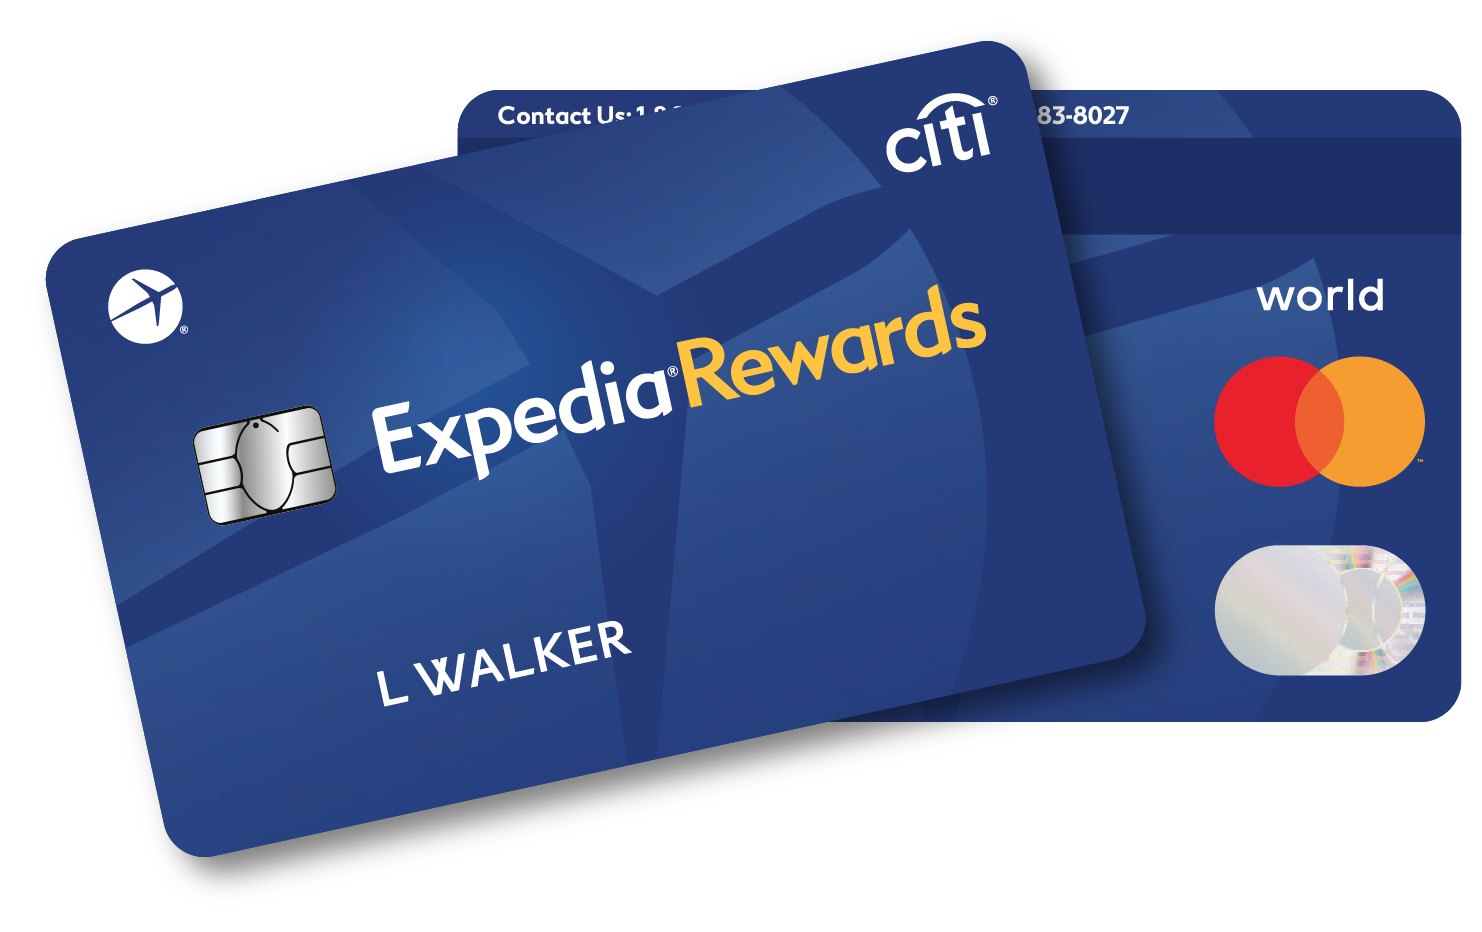 Expedia Rewards Credit Cards from Citi  Expedia 亿客行